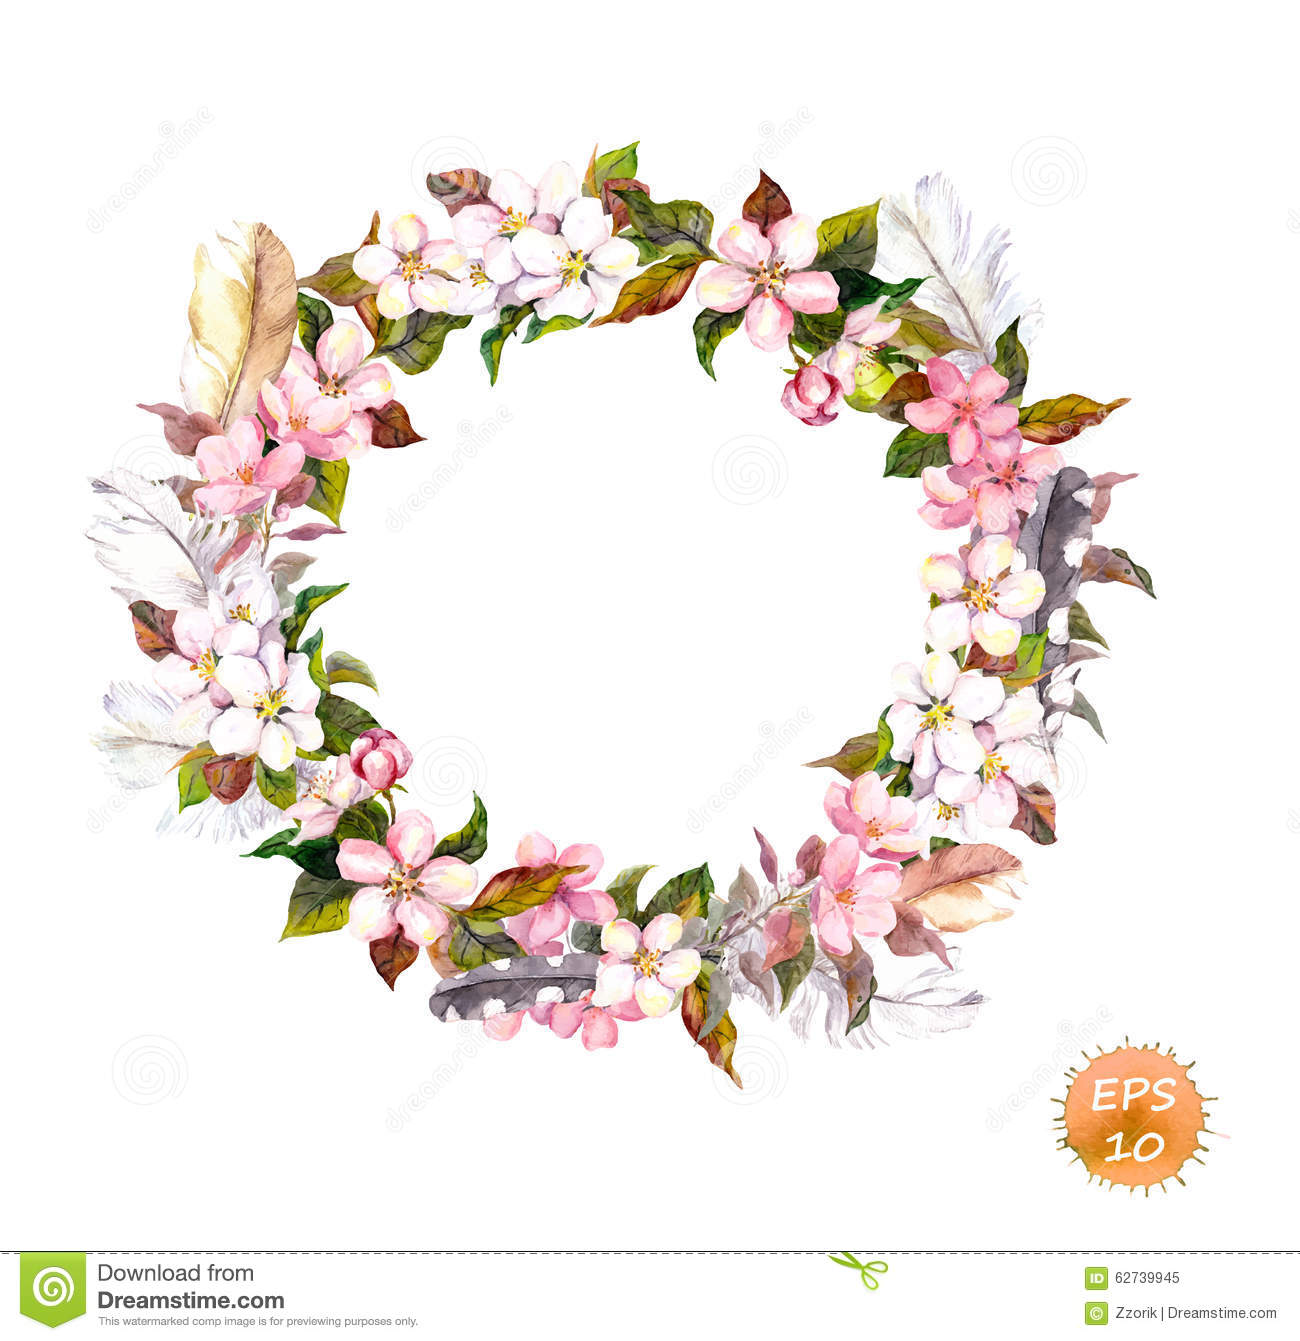 ... Flowers Cherry, Apple Flower Blossom. Stock Vector - Image: 62739945